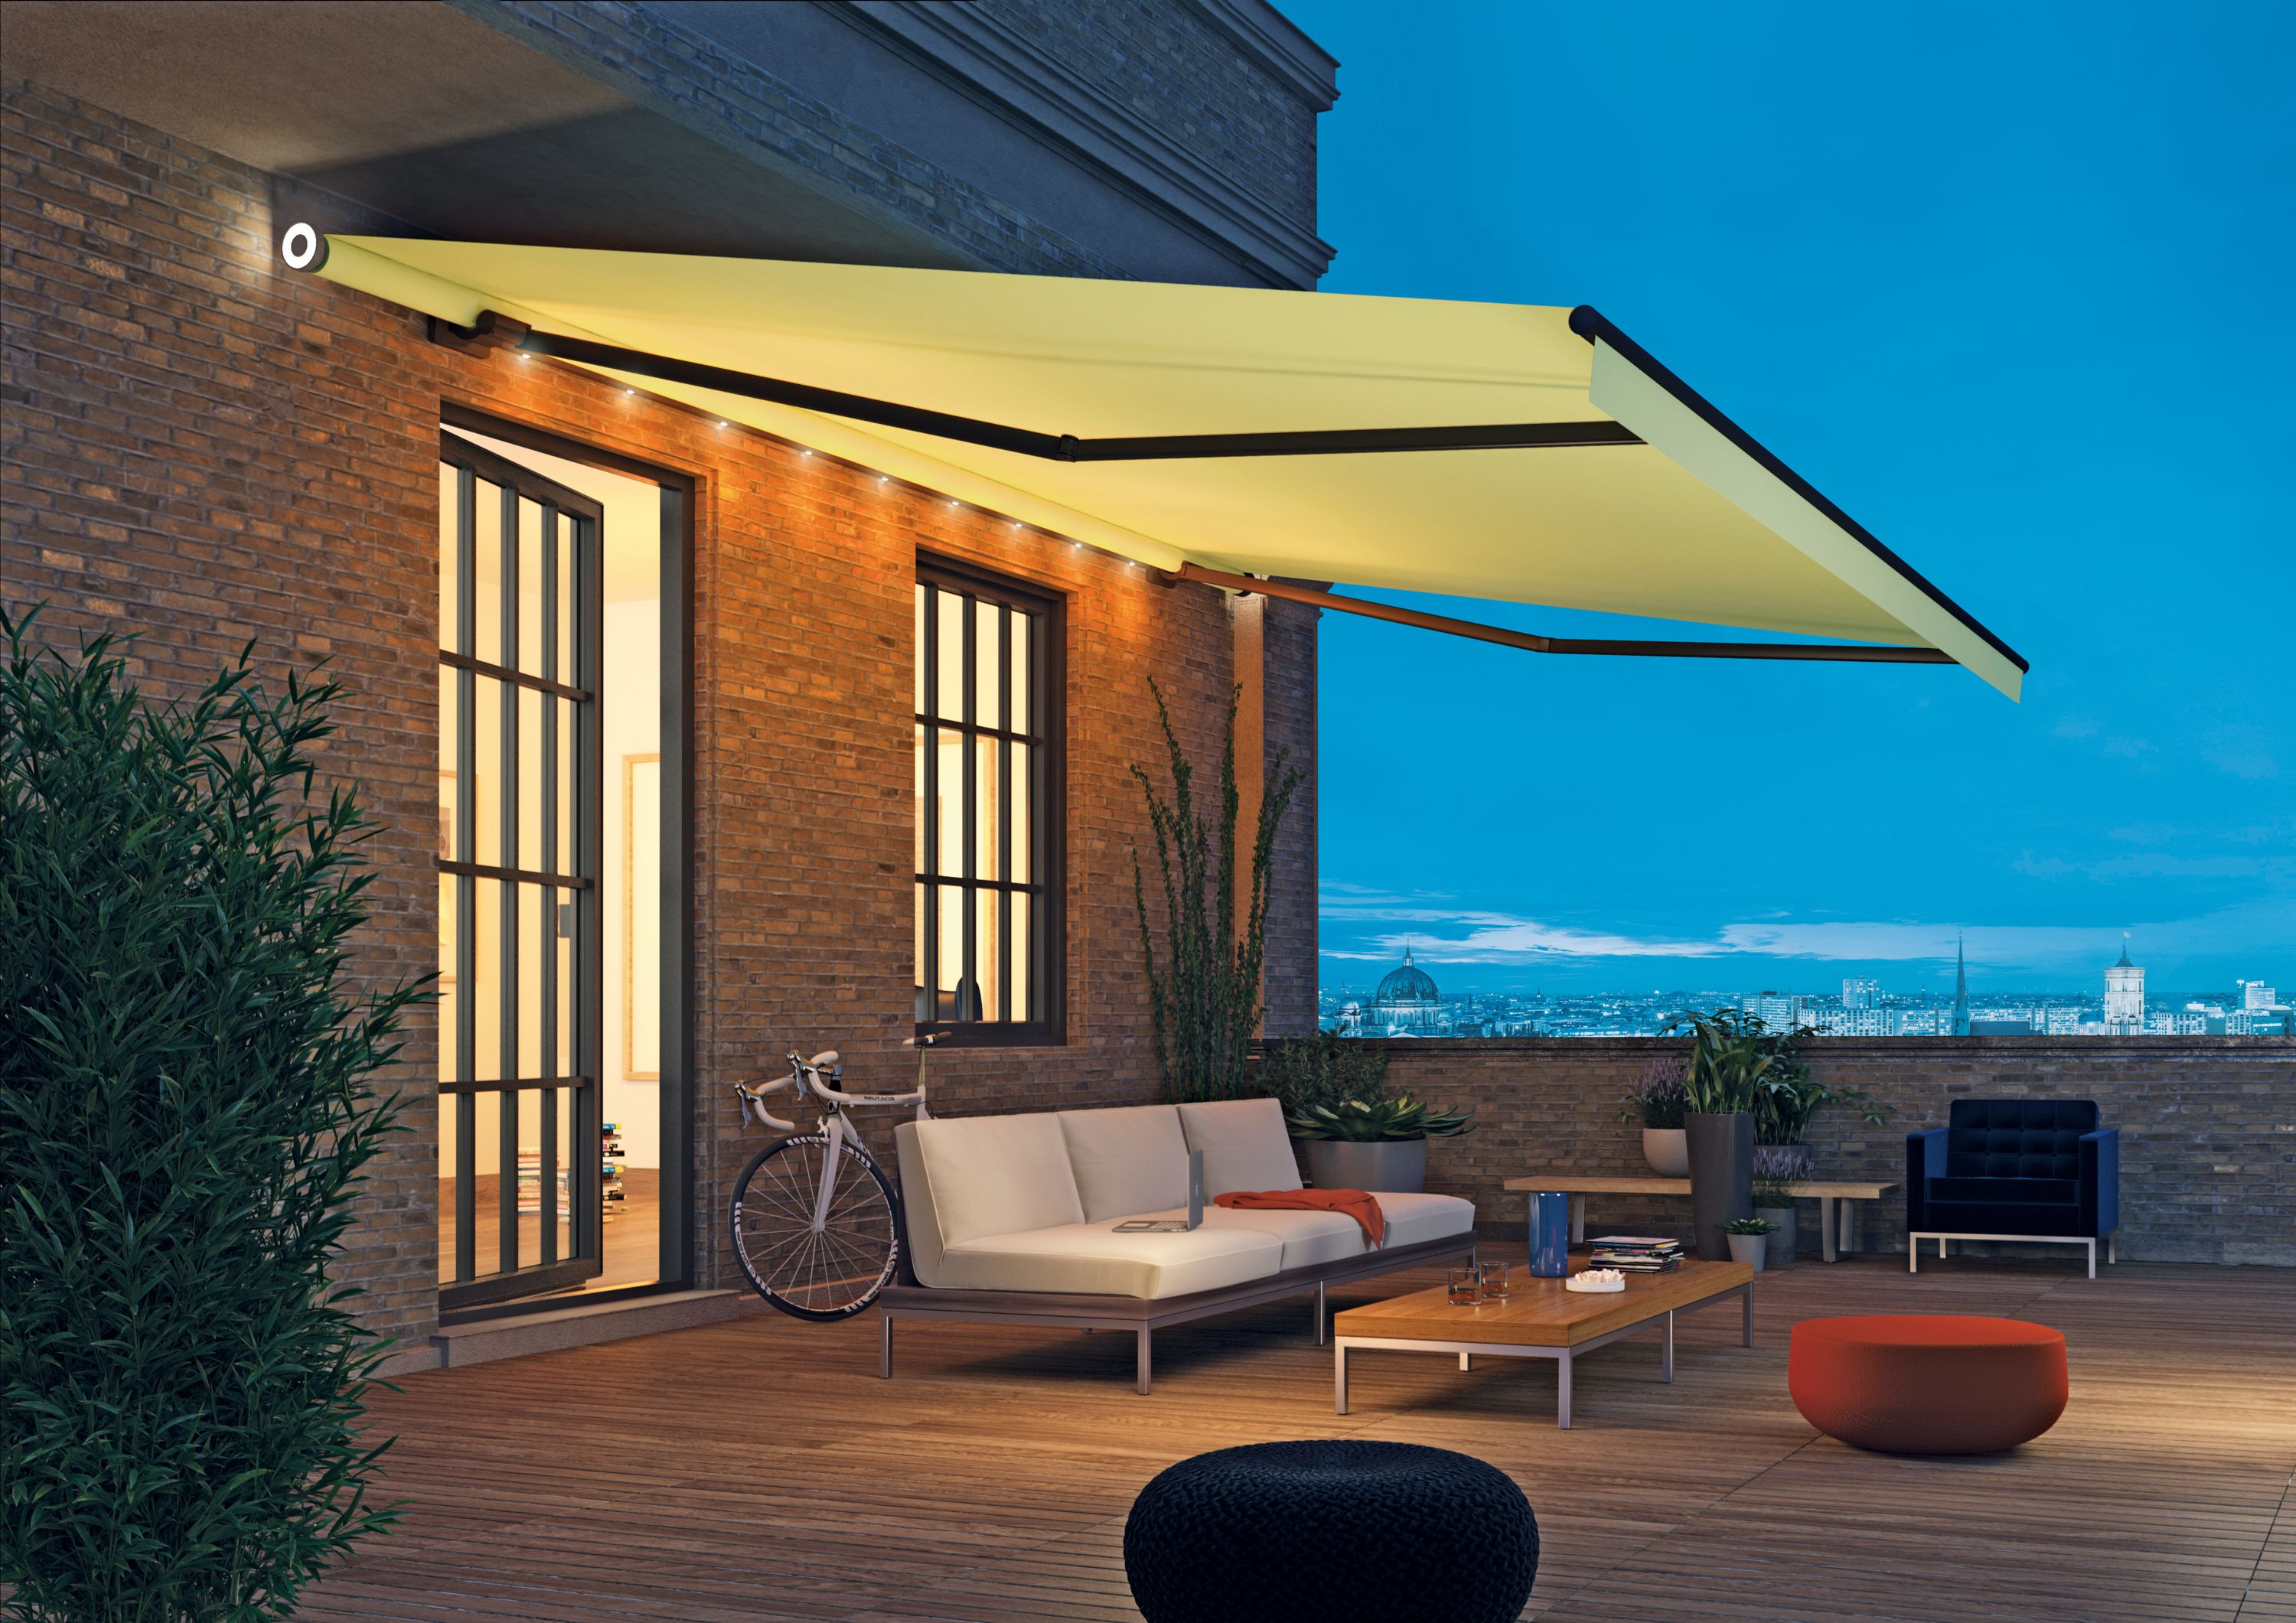 Wonderful side lit awning from Weiner | Patio awning ...